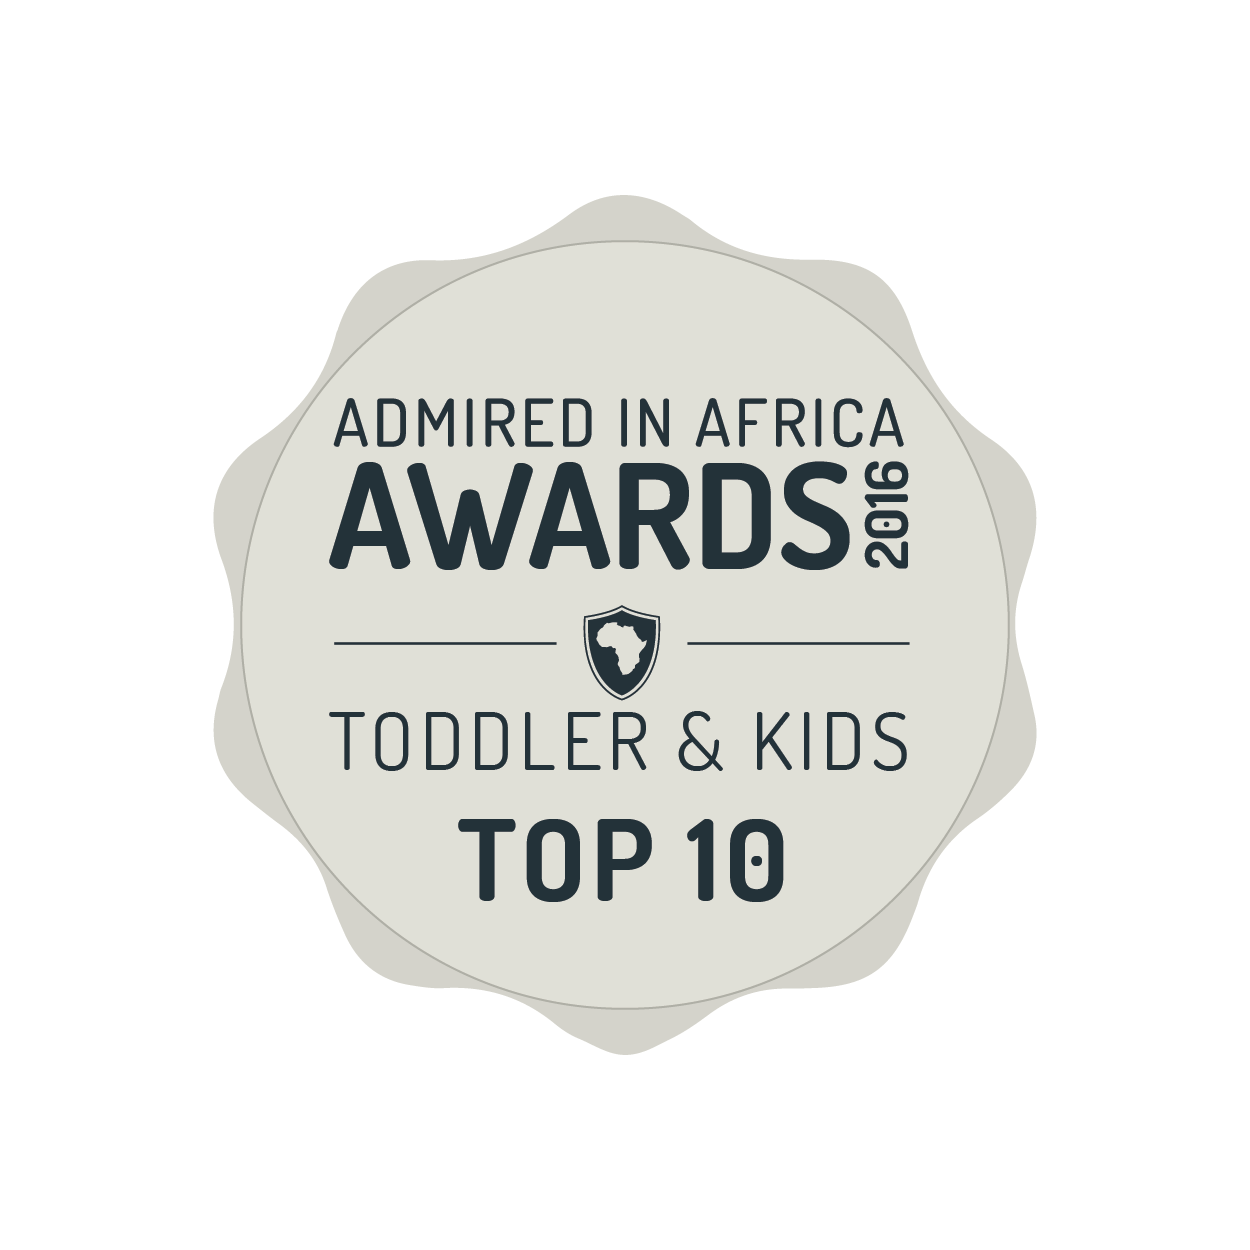 admired in africa awards top 10 toddler and kids